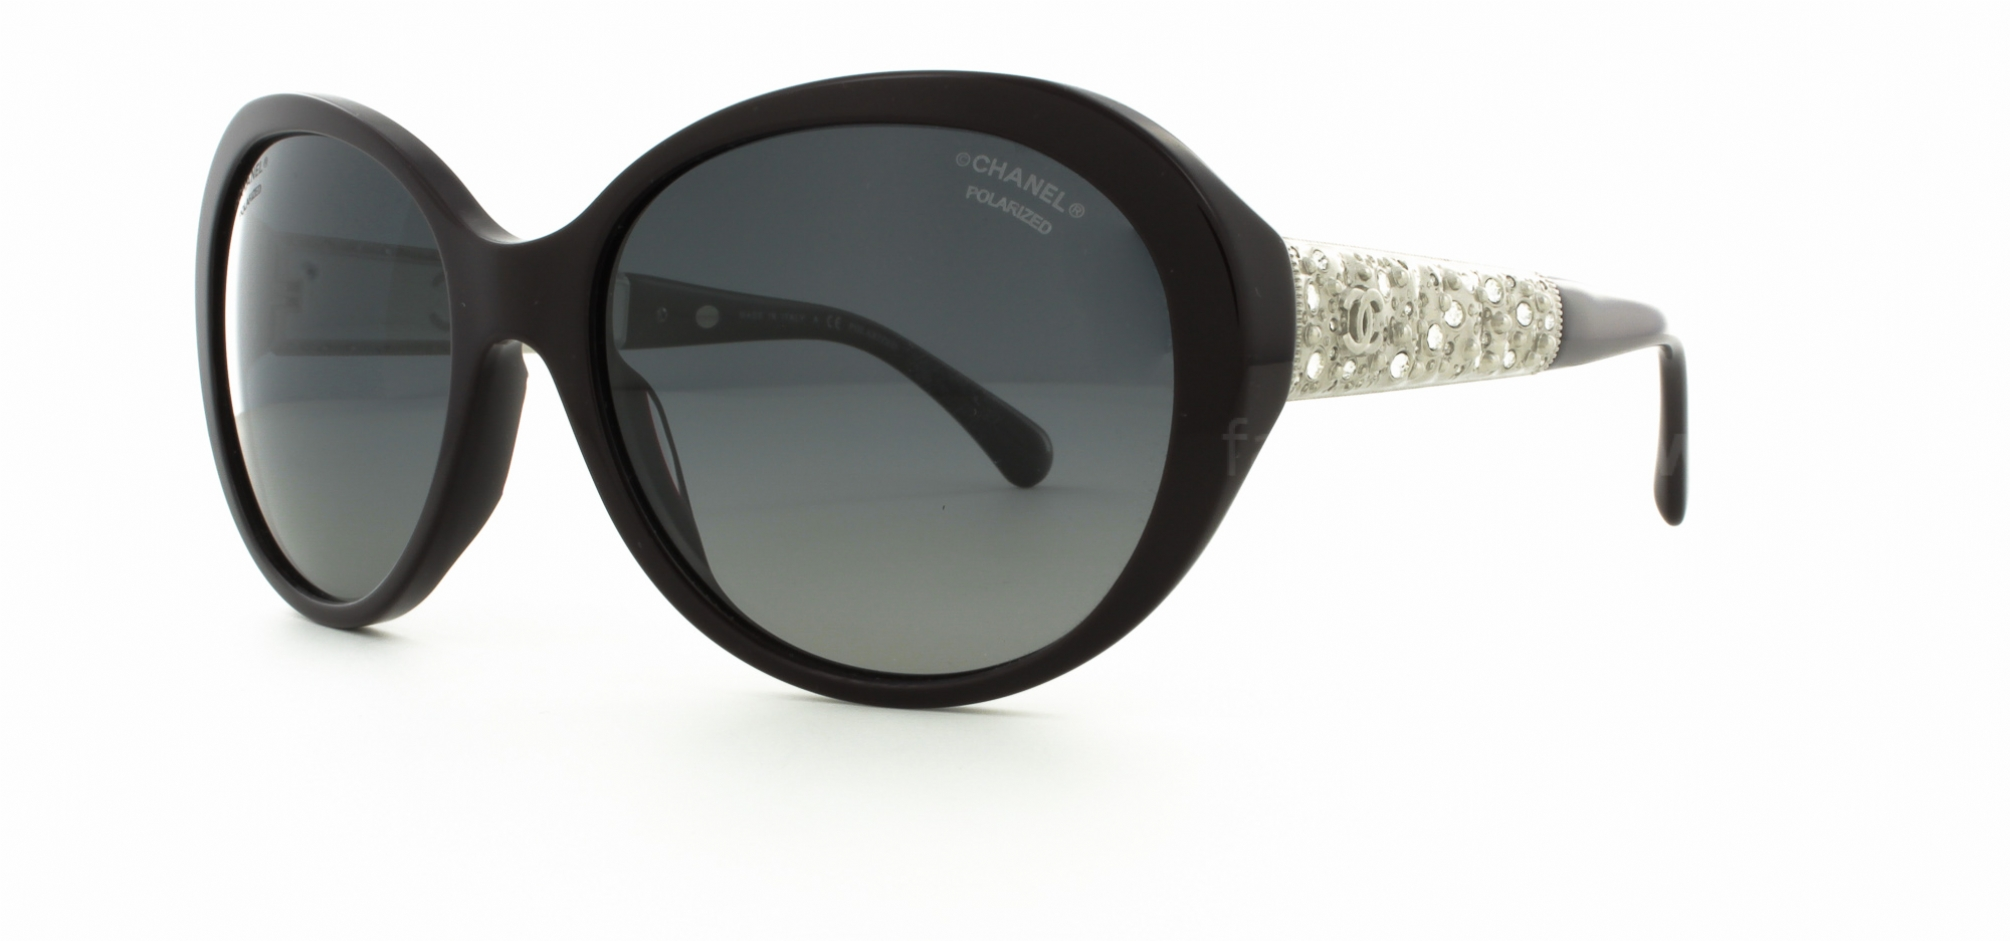 5500f22860b Buy Chanel Sunglasses directly from eyeglassesdepot.com